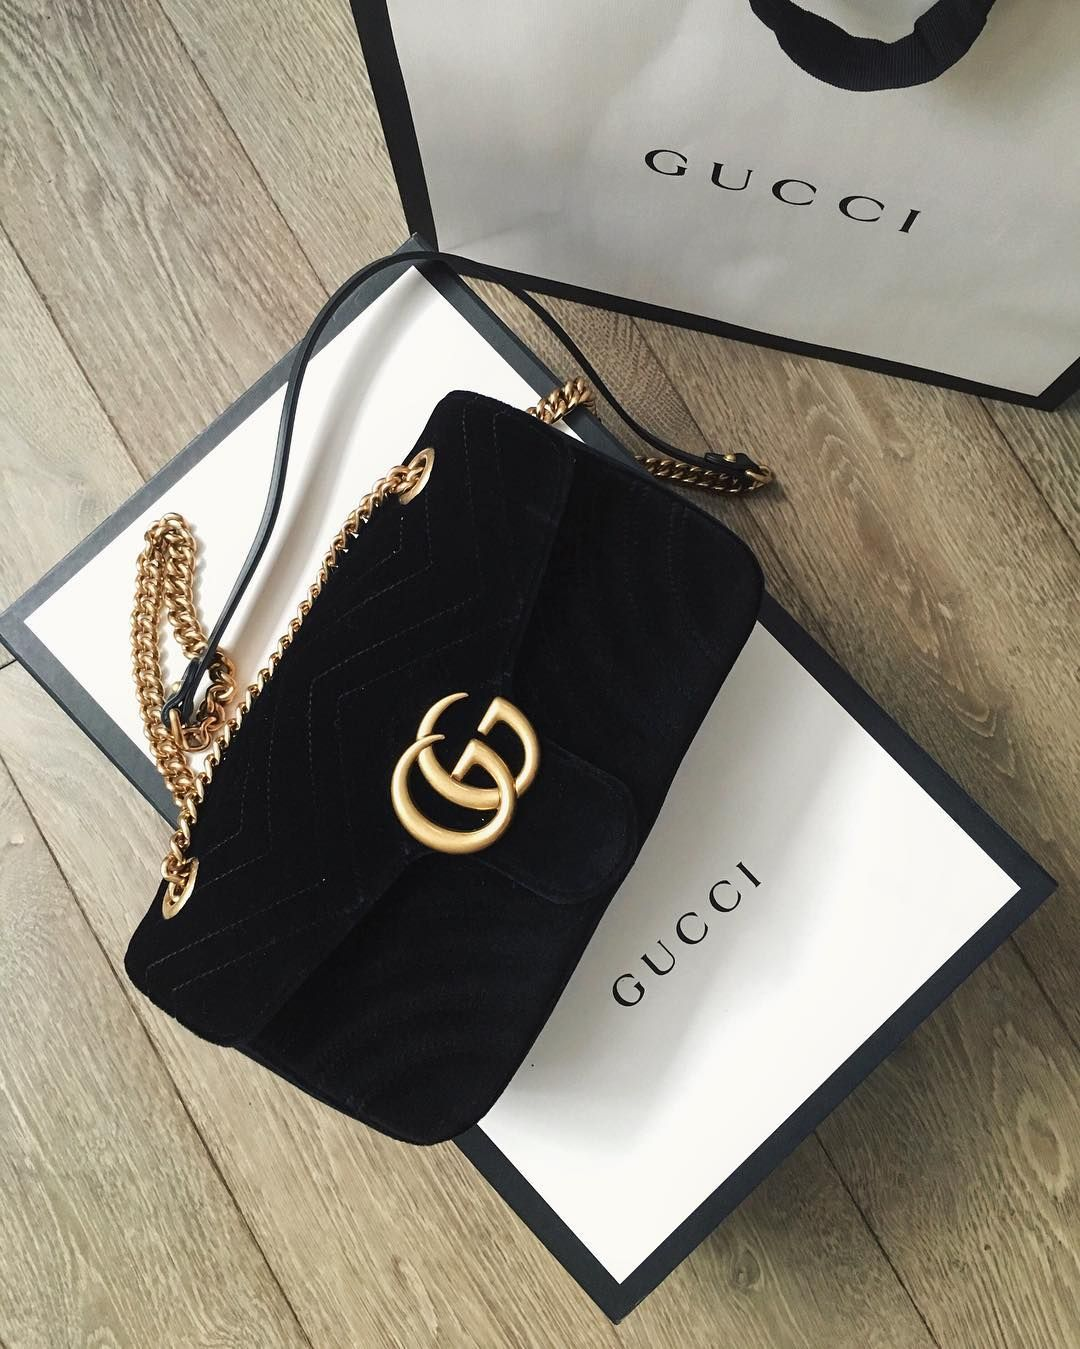 Gucci Marmont Velvet Mini Bag Black - Love it in black and fuchsia ...